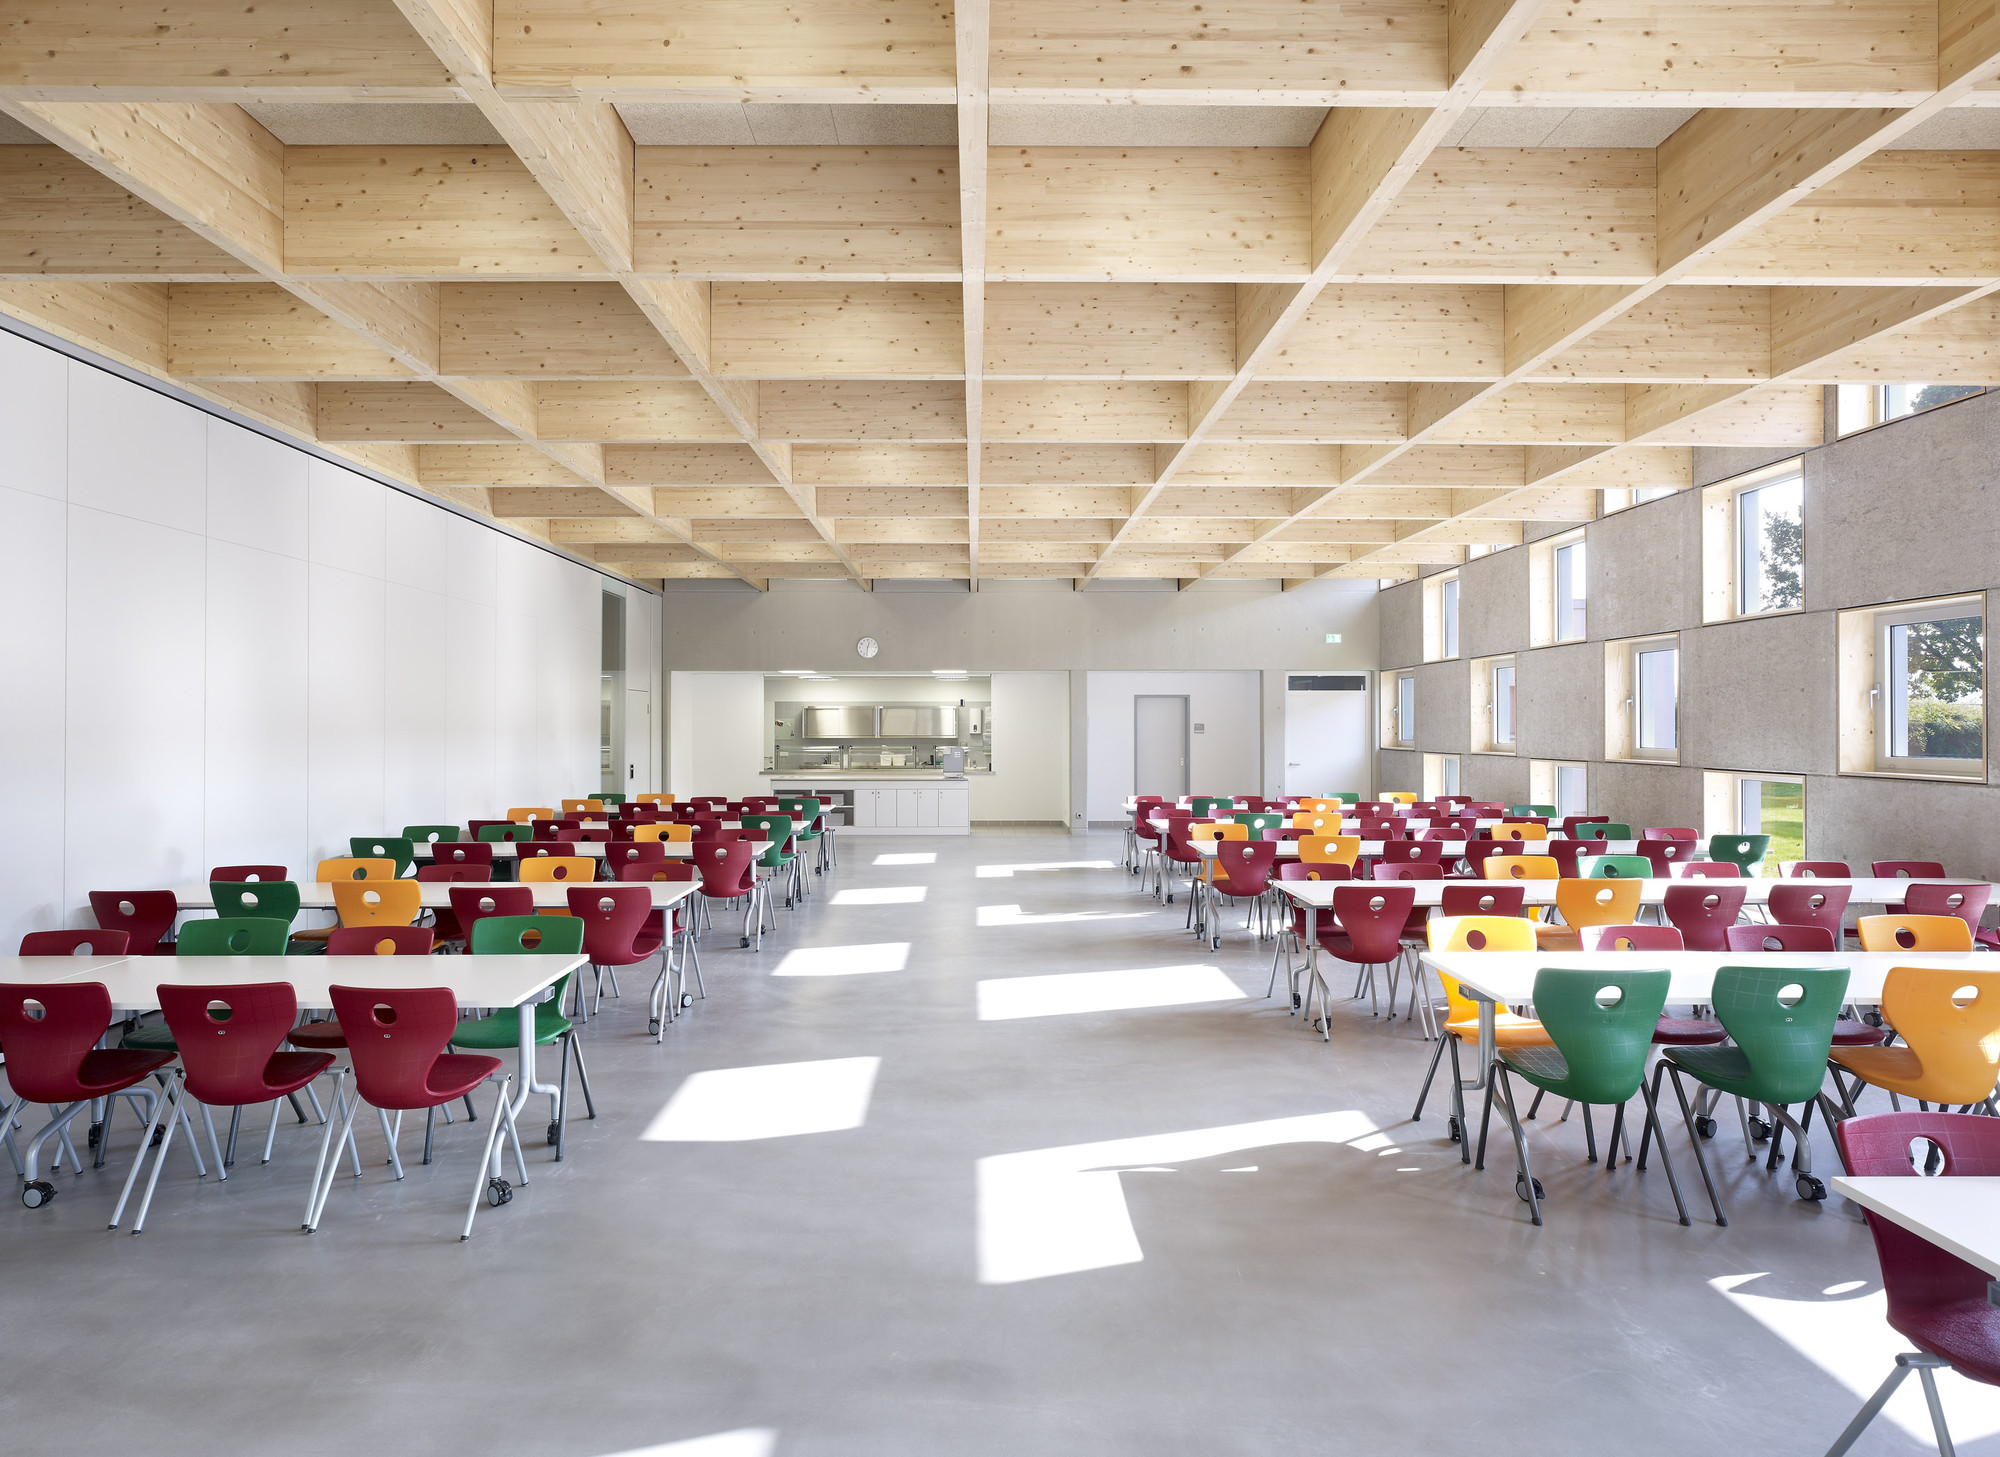 Gallery Of Salmtal Secondary School Canteen